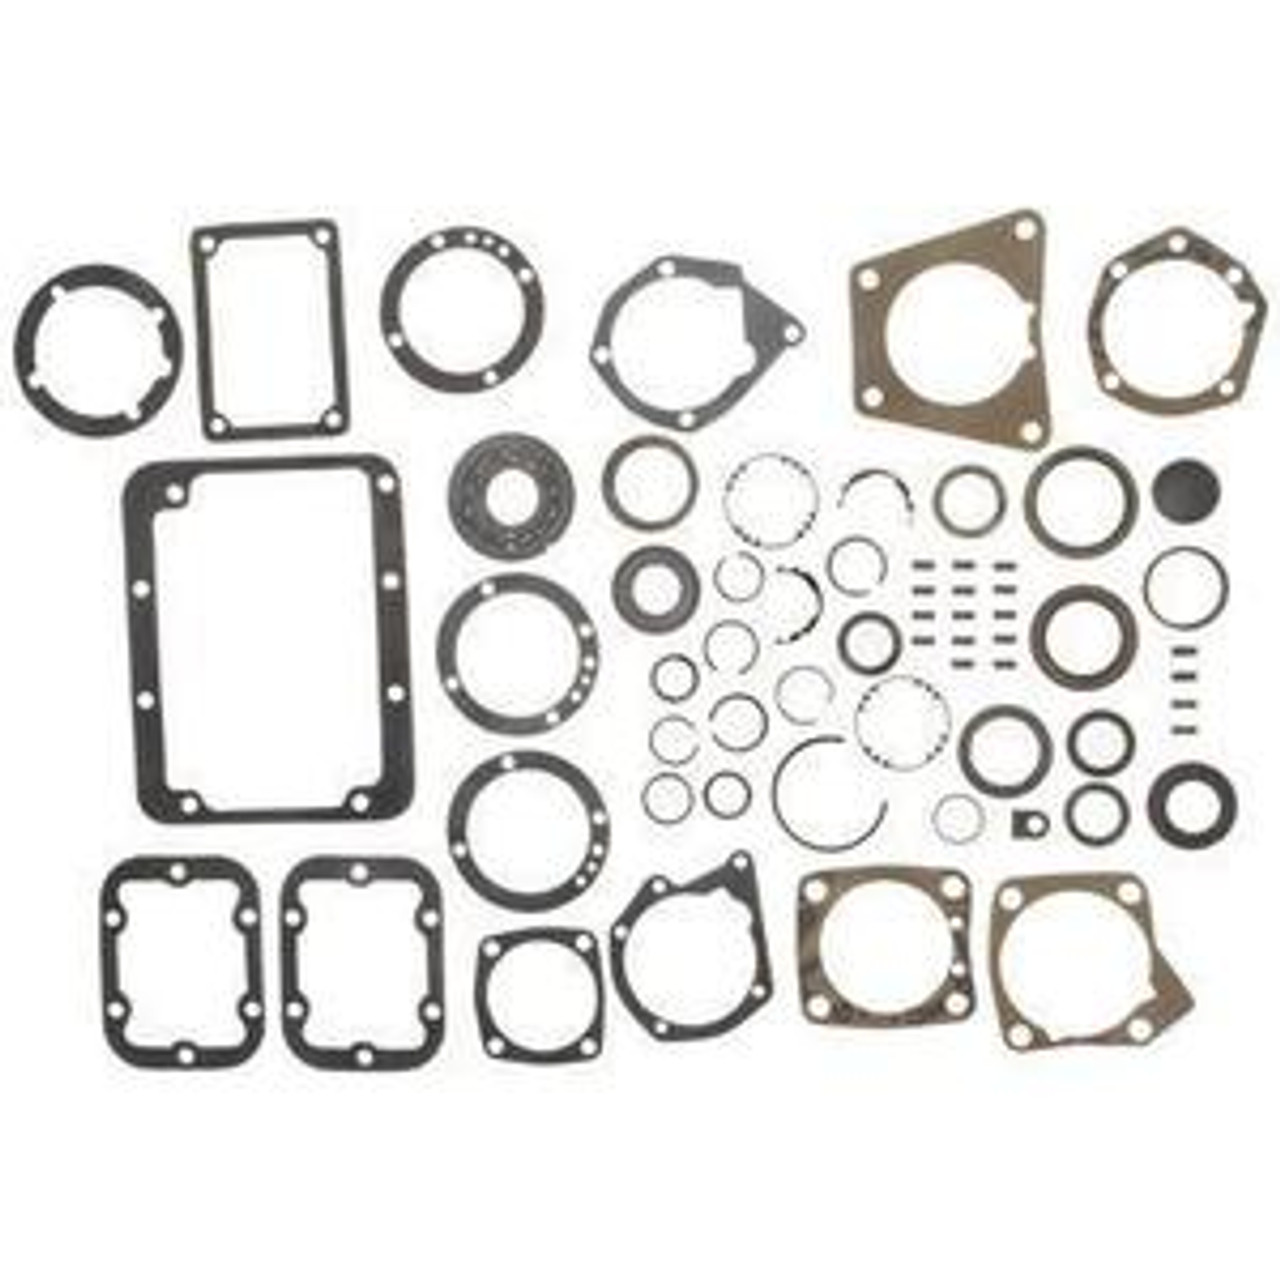 NP435 TRANSMISSION REBUILD KIT FITS '65+ FORD & GM WITH